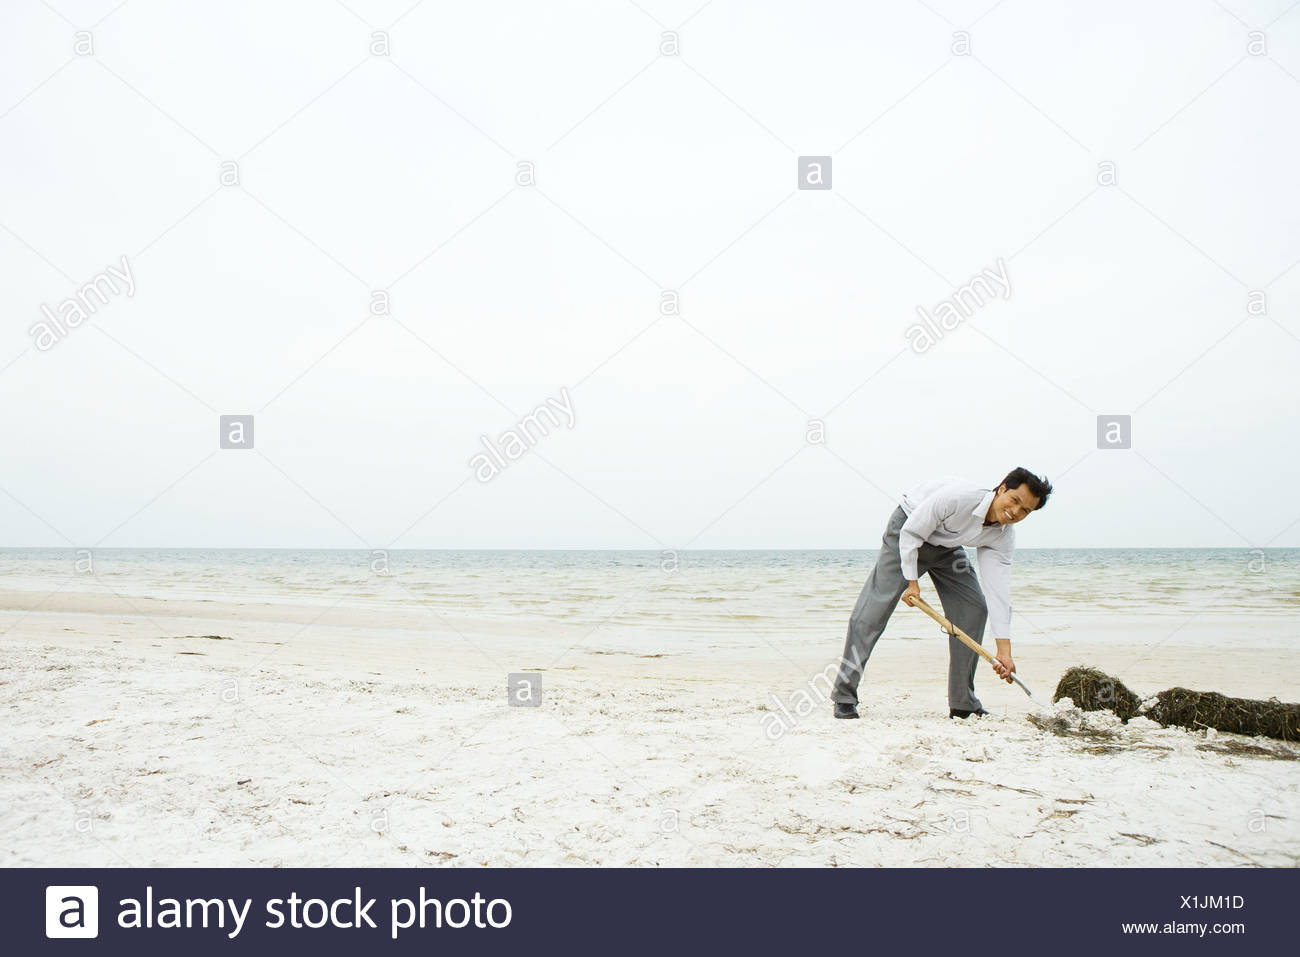 Man at the beach, bending over and digging in sand, smiling at camera - Stock Image